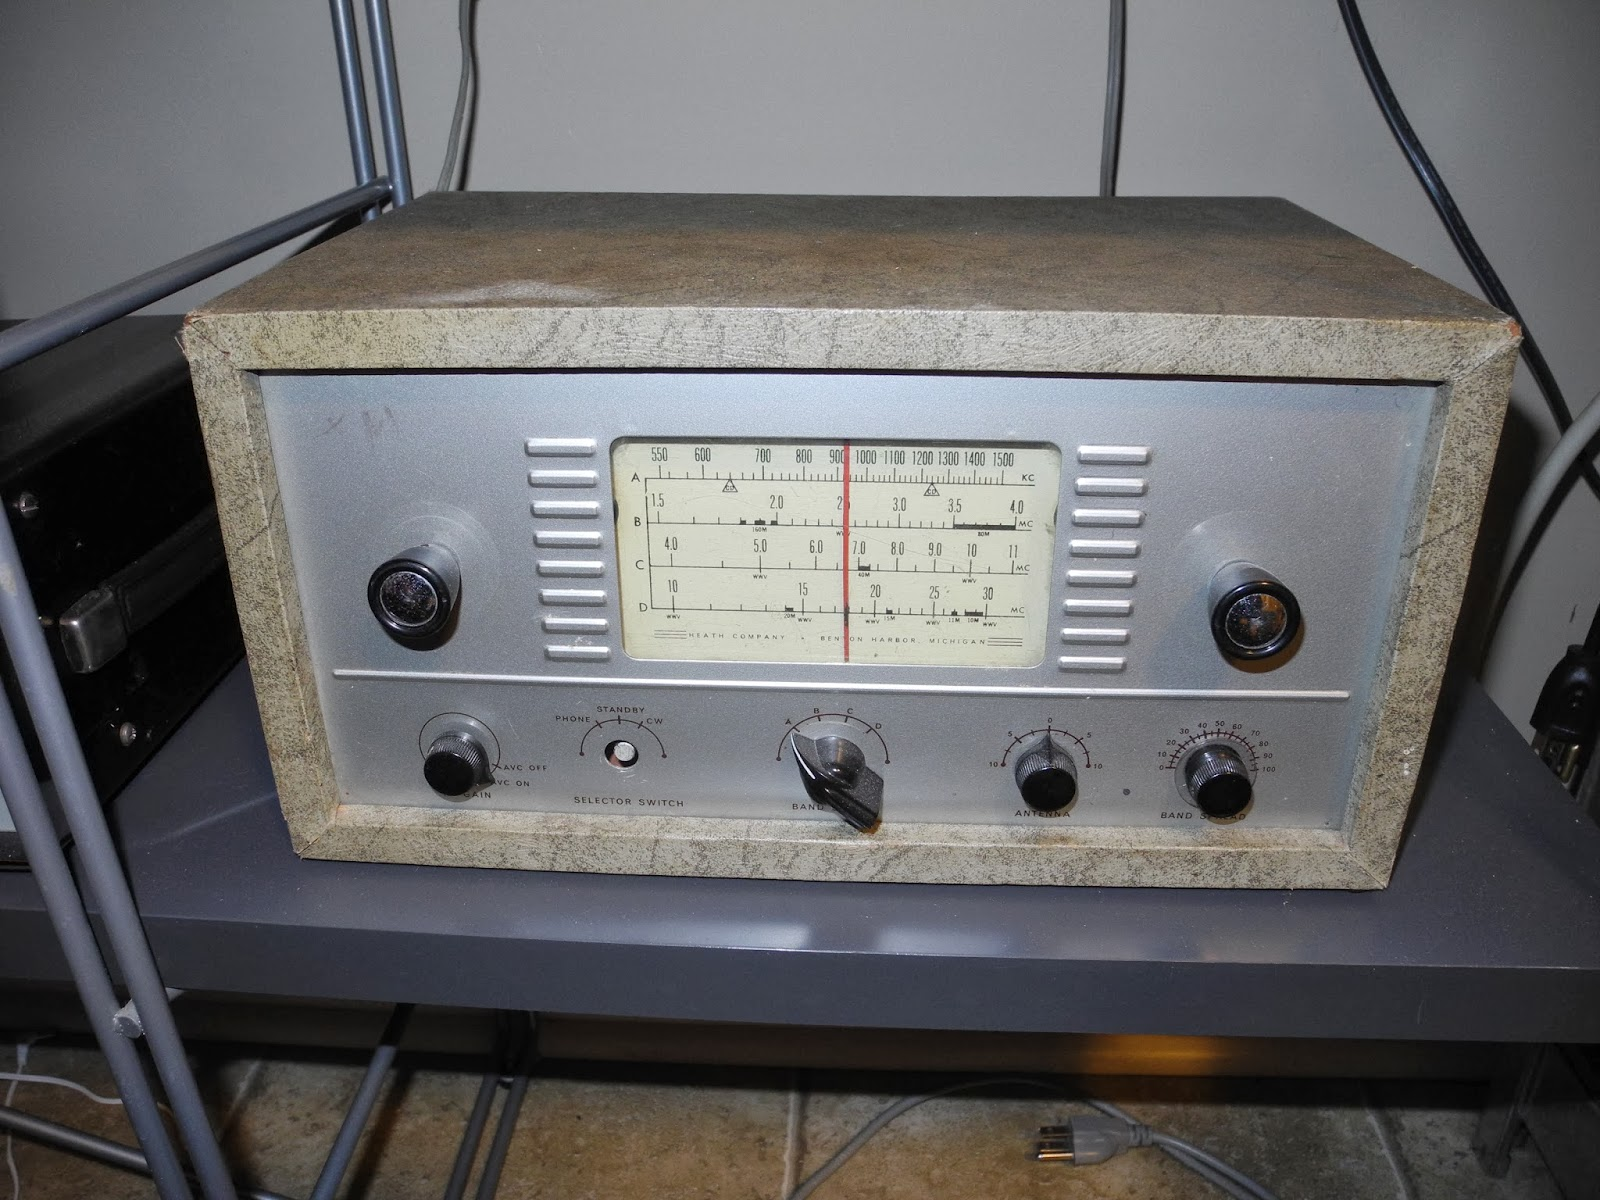 AR-3 Heathkit Receiver